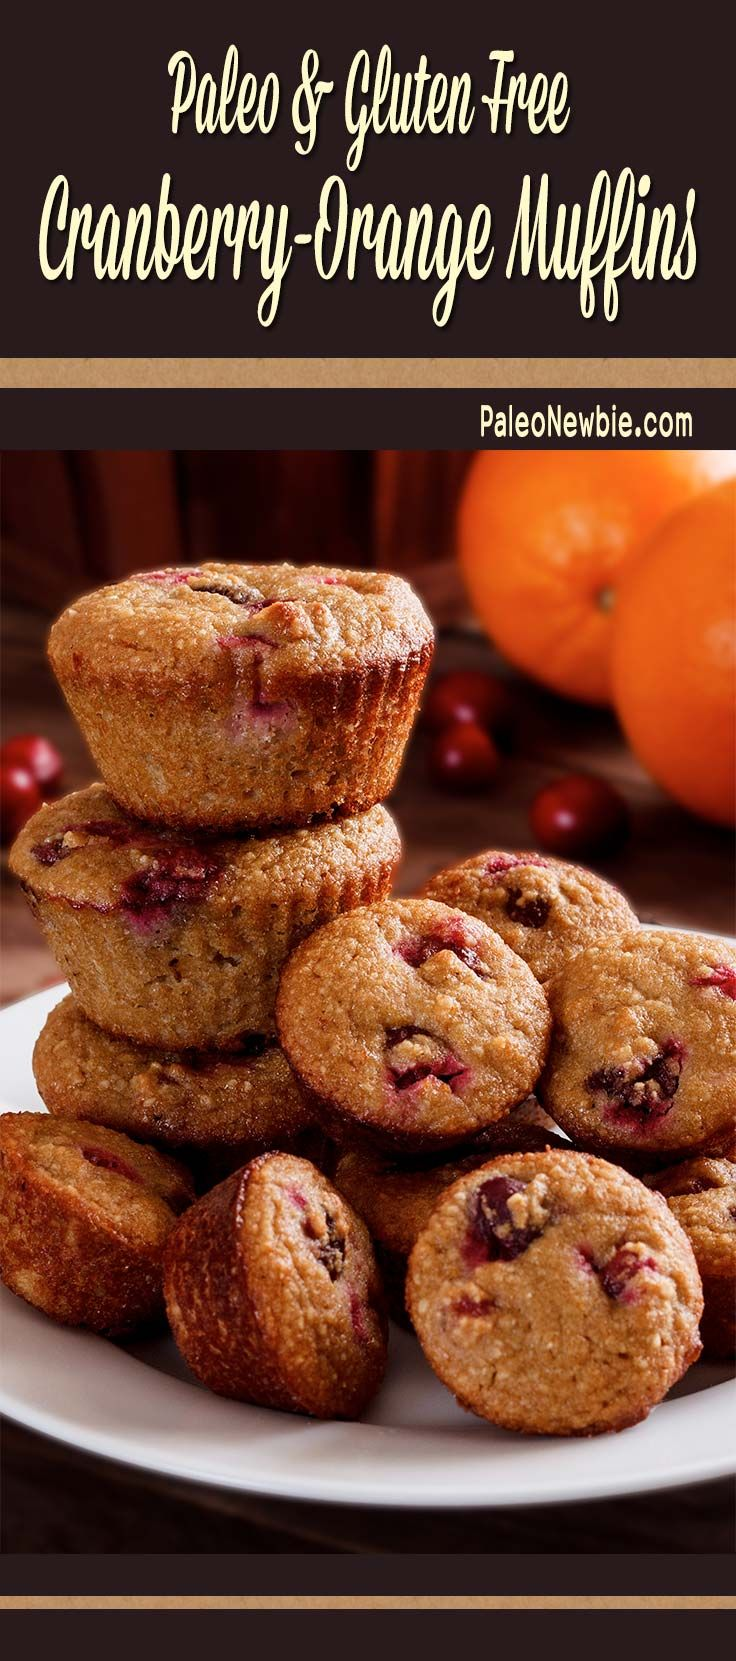 Easy and light breakfast or anytime muffins that are more sassy than sweet. #paleo #glutenfree